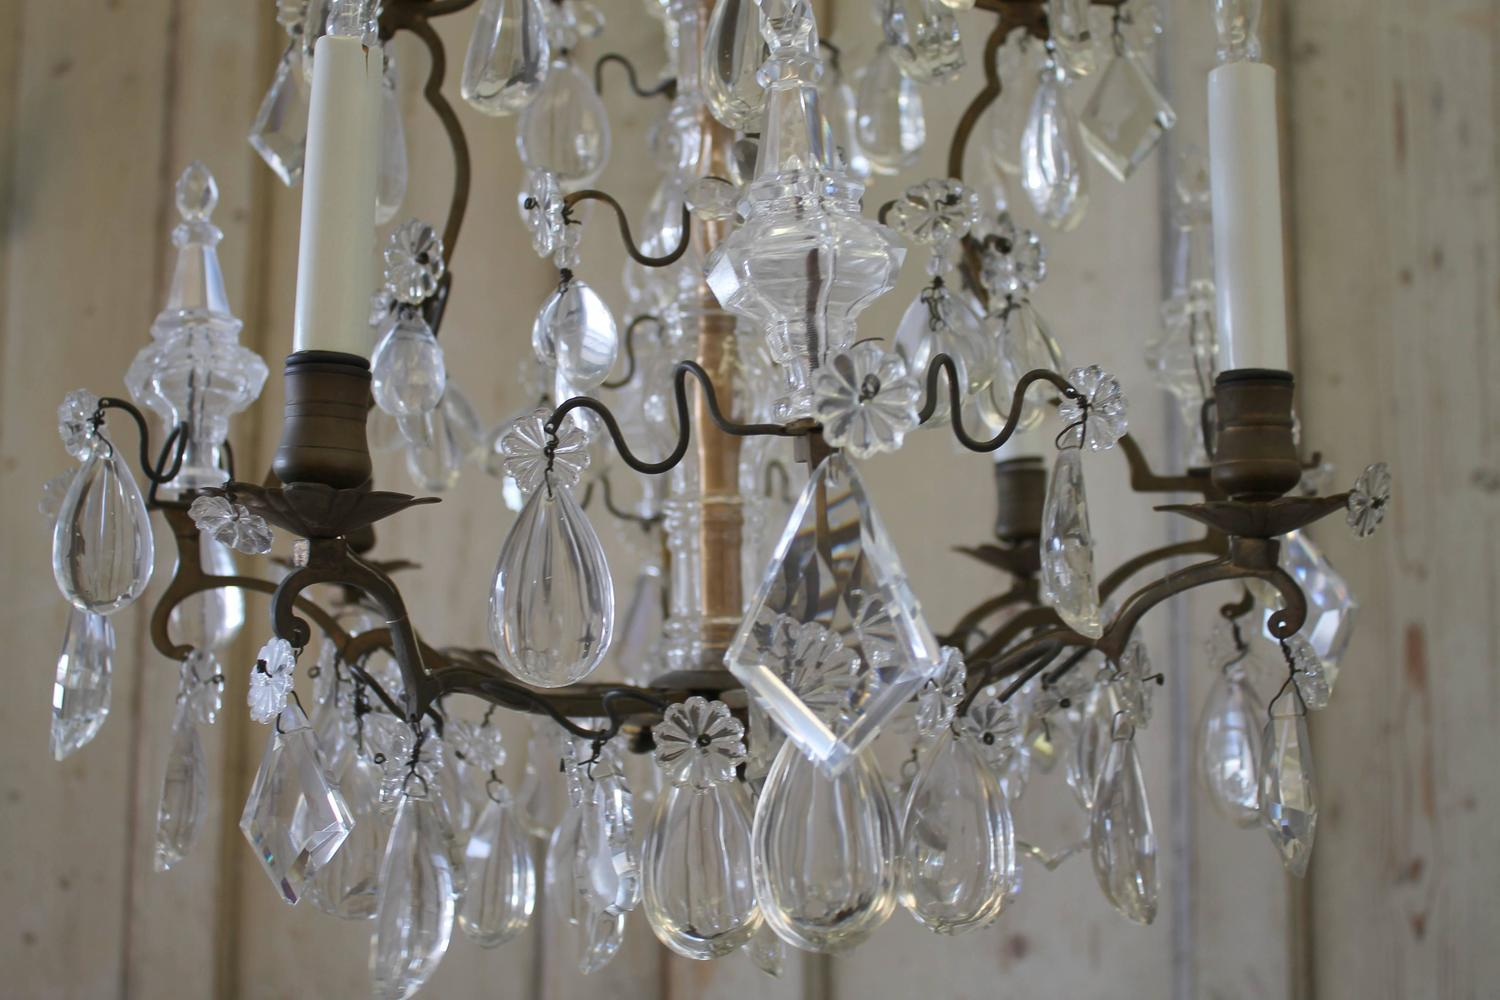 Antique French Bronze and Crystal Chandelier For Sale at